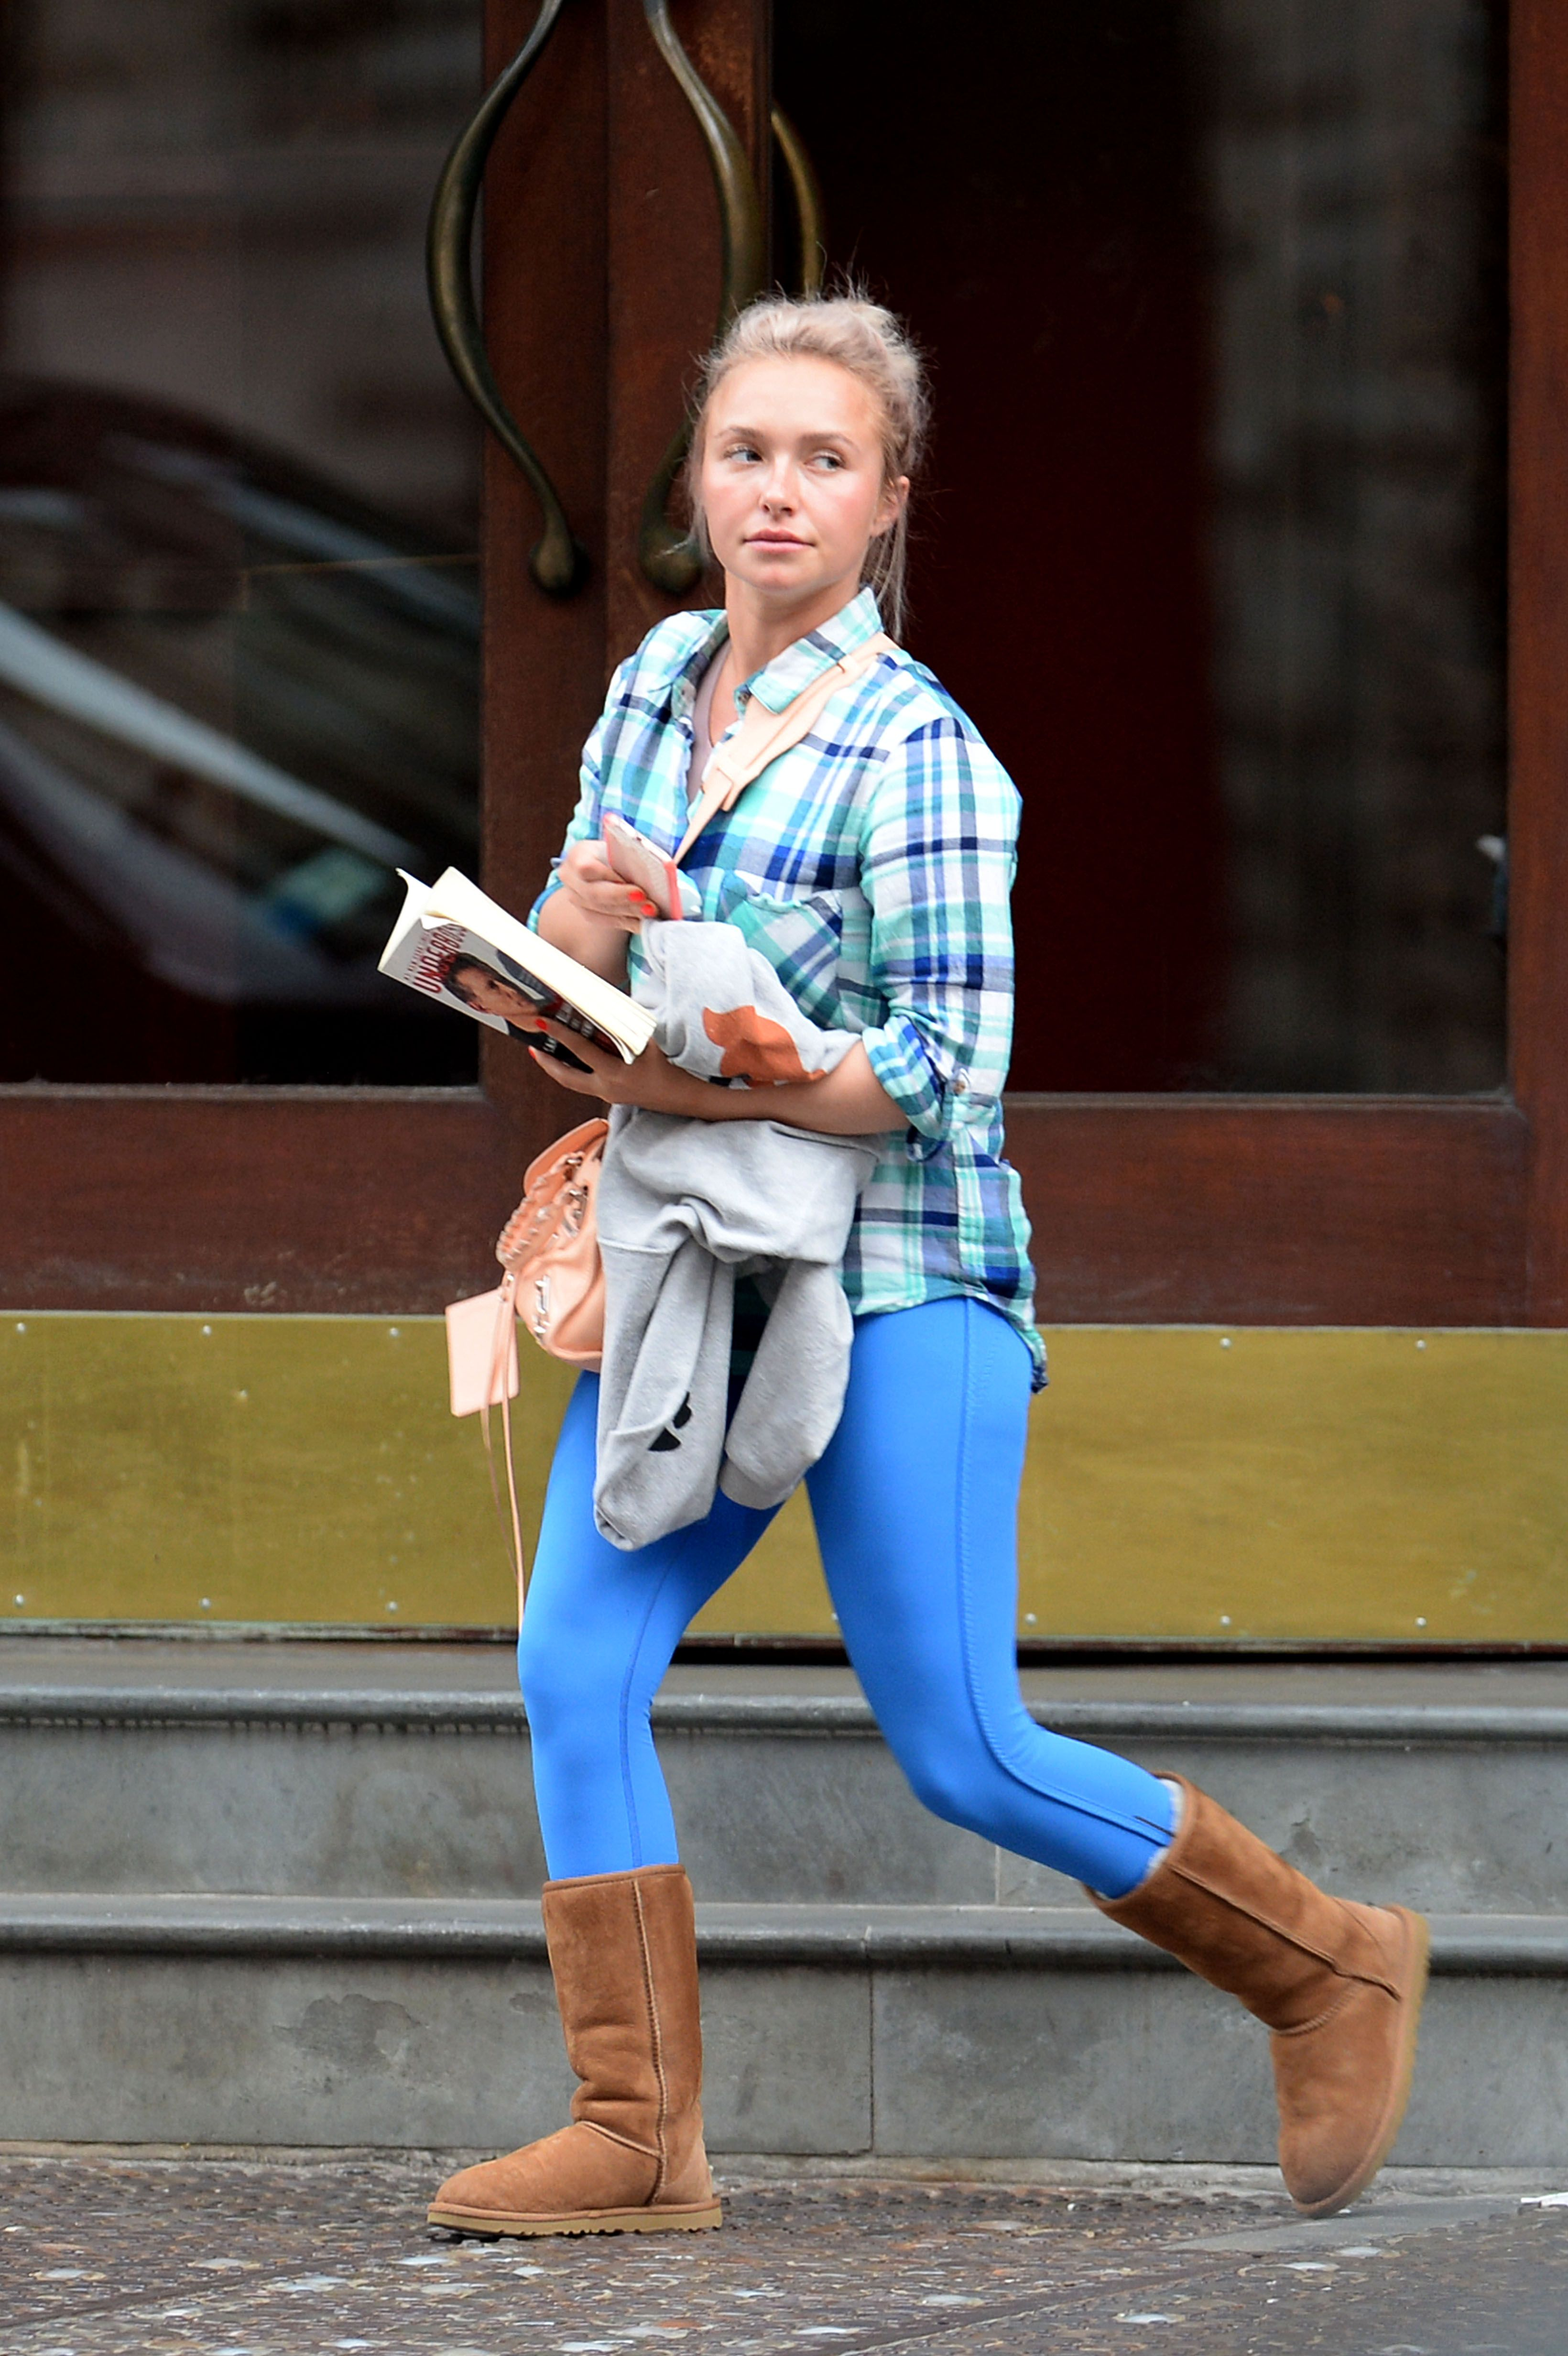 Find This Pin And More On Hayden Panettiere Hayden Panettiere Spotted  Without Engagement Ring